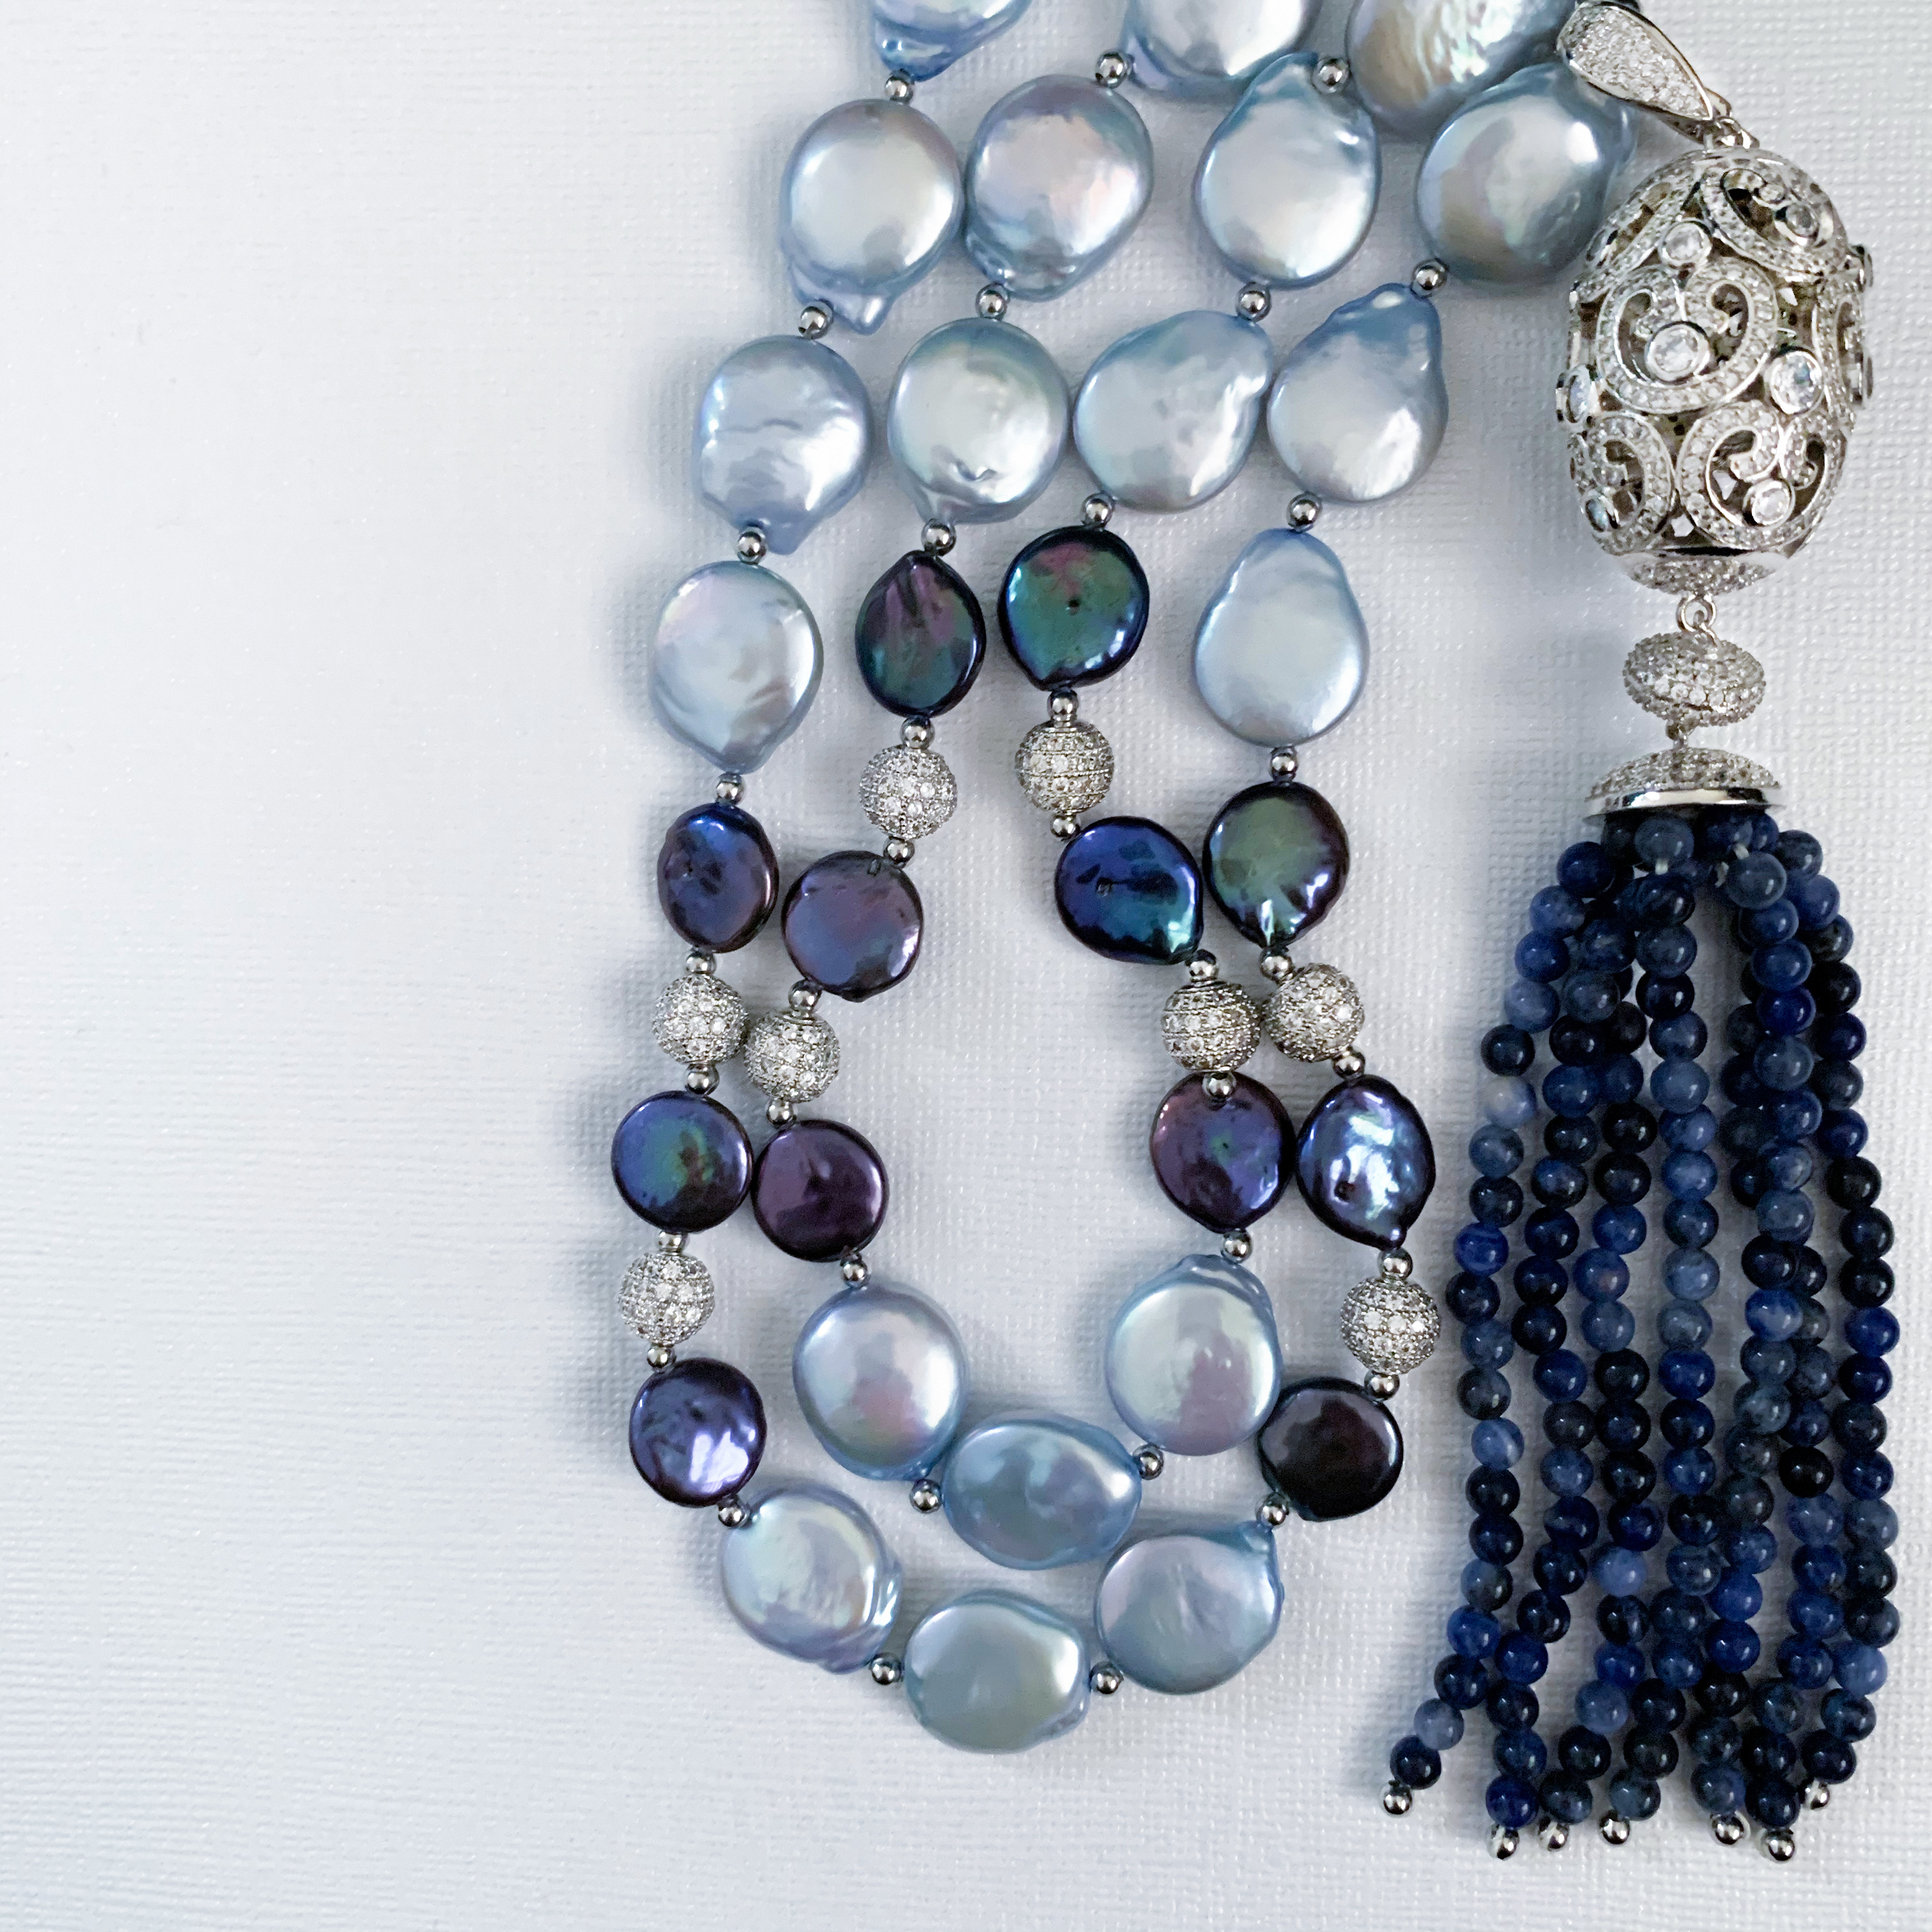 Lorette Blue Baroque Coin Pearl with Luxe Silver Pendant Necklace